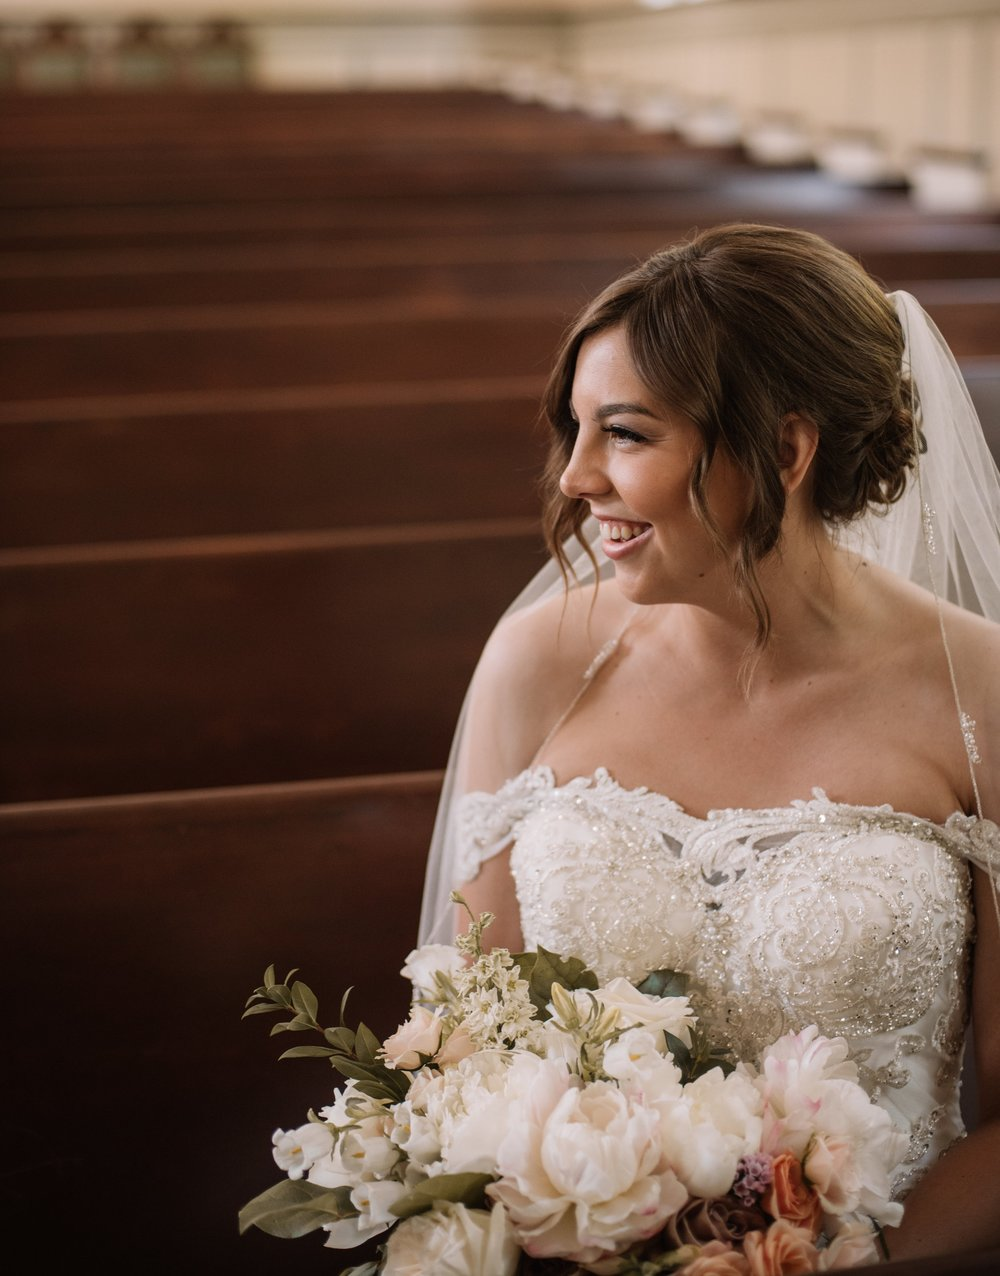 Exquisite….They were utterly gorgeous! Definitely not stereotypical florist arrangements, but artfully and creatively composed. - — Susan Butler, Mother of the Bride